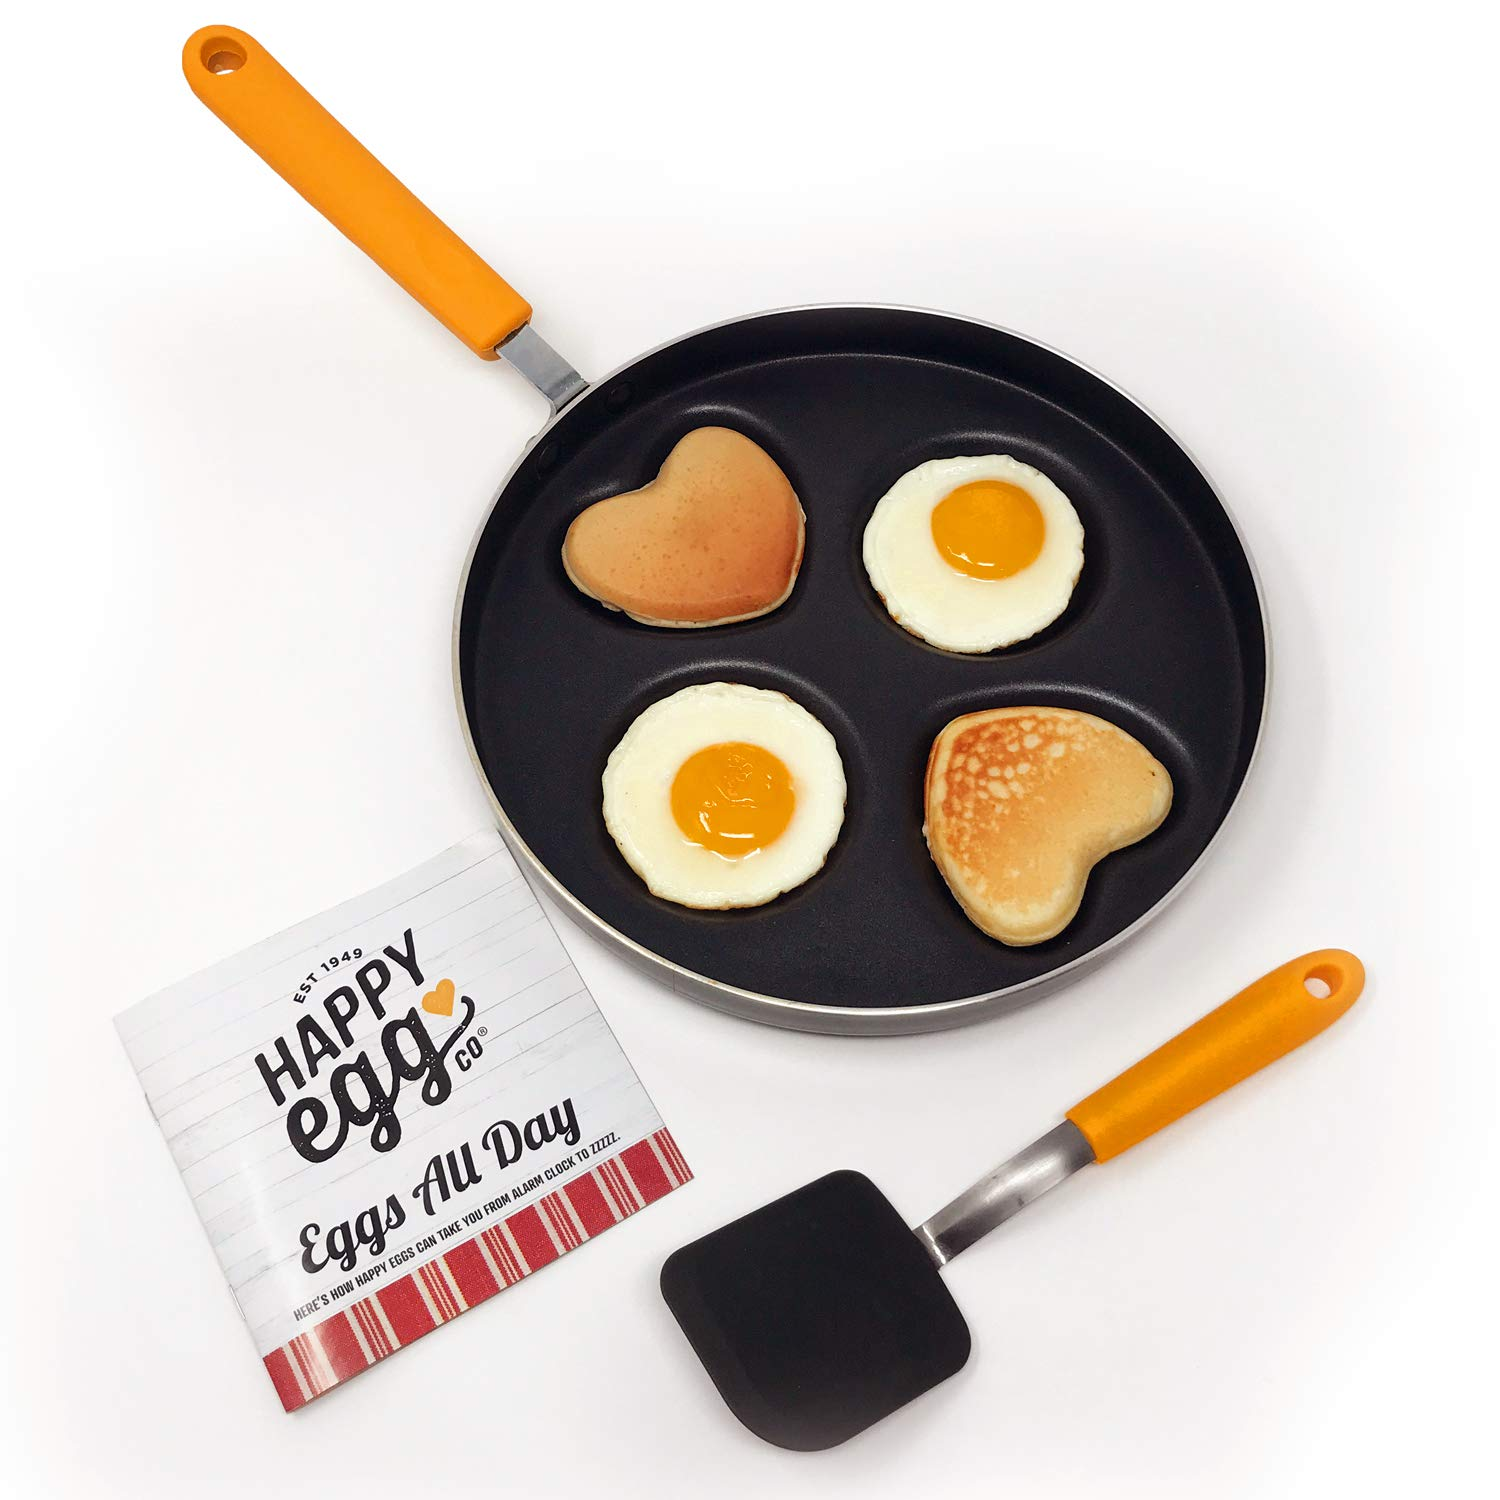 Heart & Circle 4 Cup Nonstick Pan – Happy Egg Pan by Choosy Chef, Spatula & Recipe Book Included